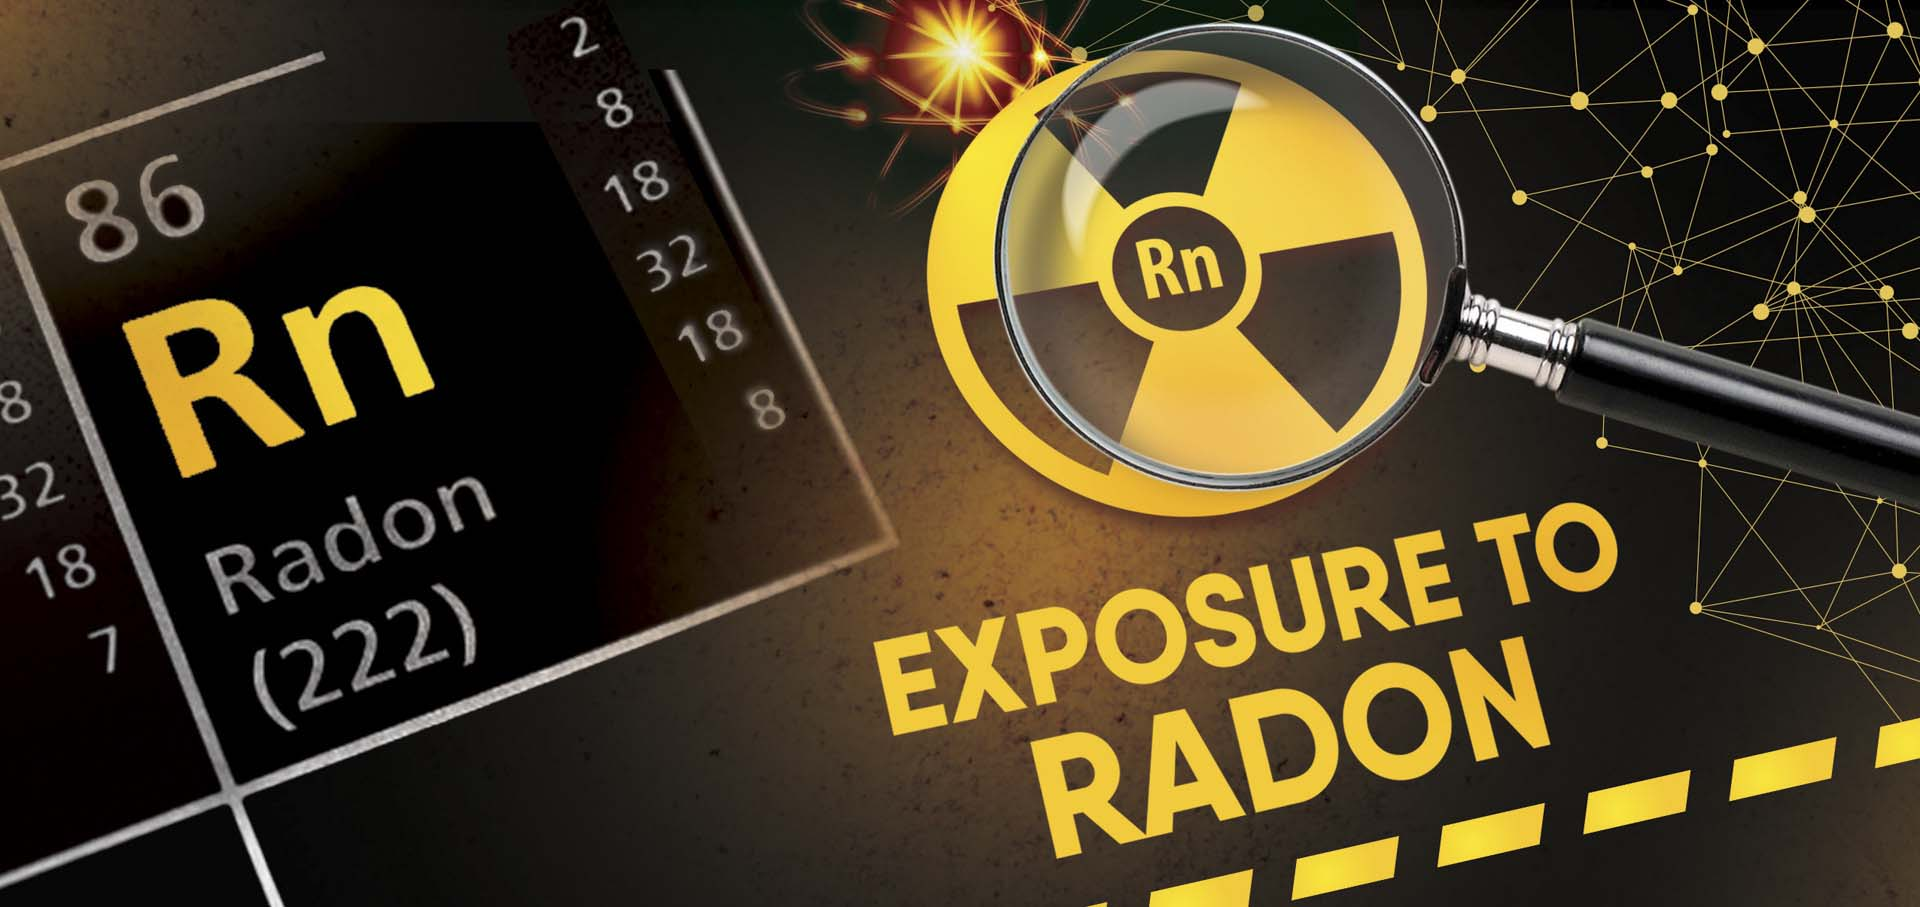 quartz and granite worktops radon gas exposure cancer risk